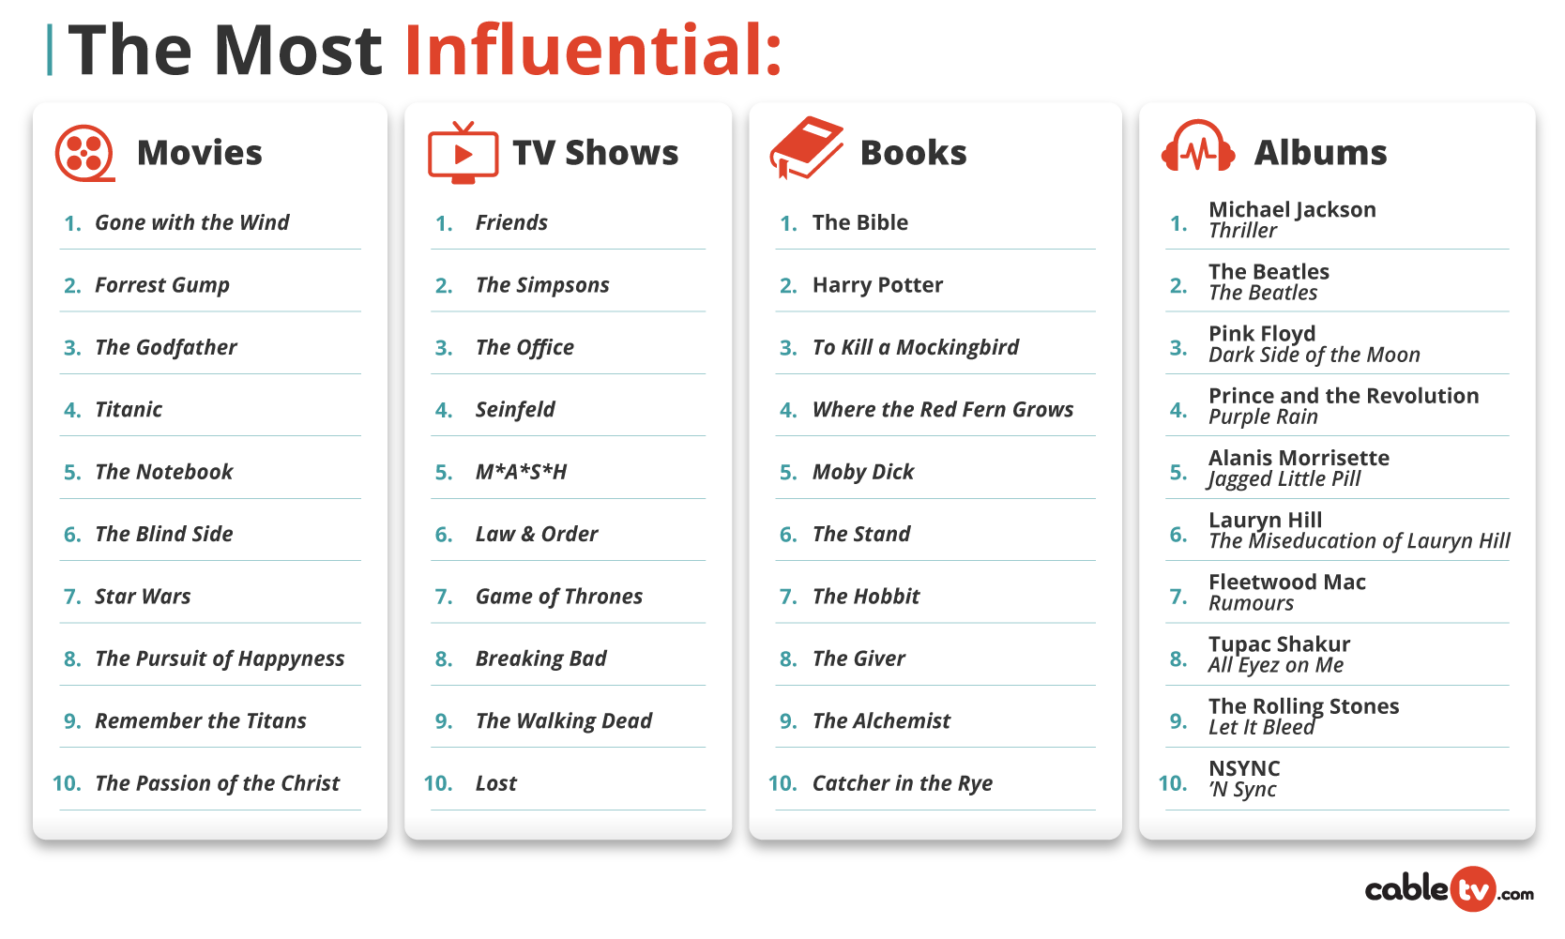 The Most Influential Movies, TV Shows, Books, Albums